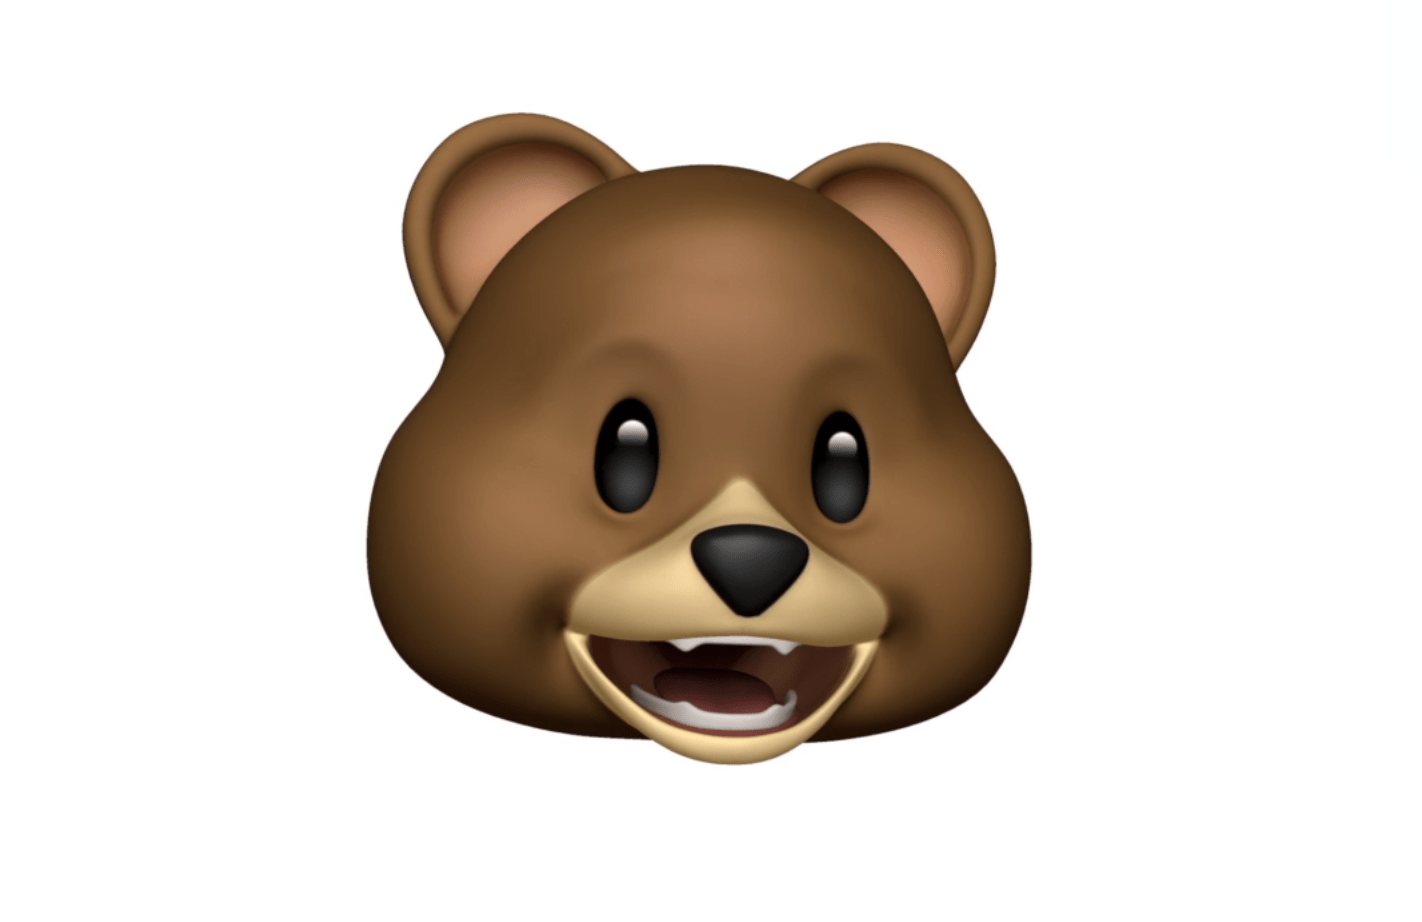 Apple releases iOS 11.3 with Battery Management. New Animoji and More